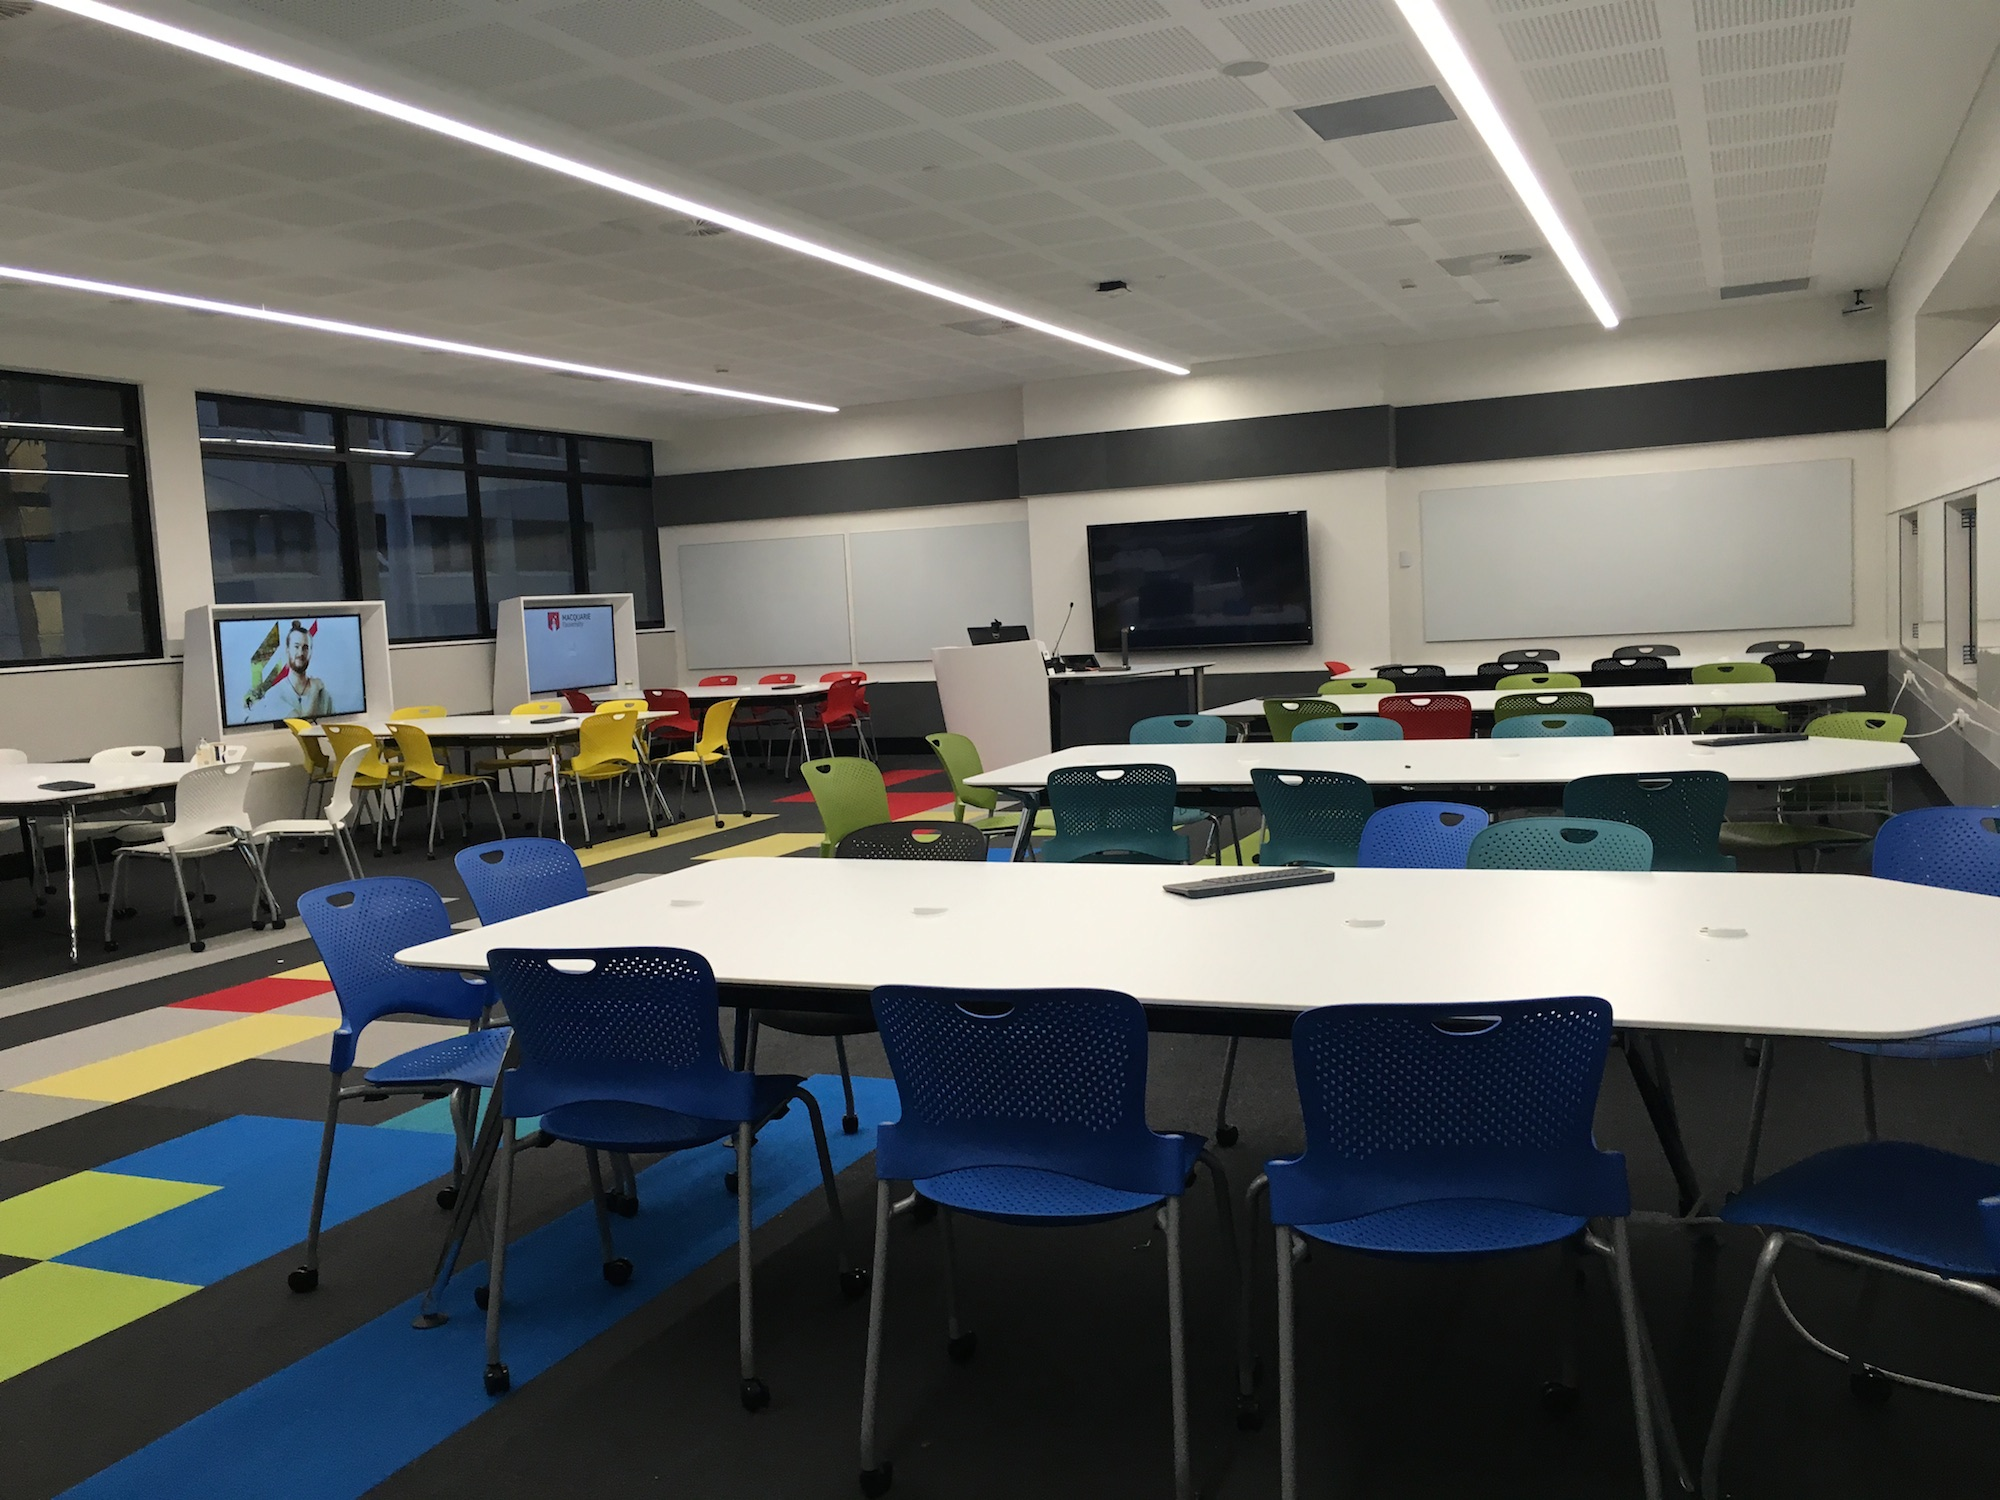 C5A 430 learning space set up for groups